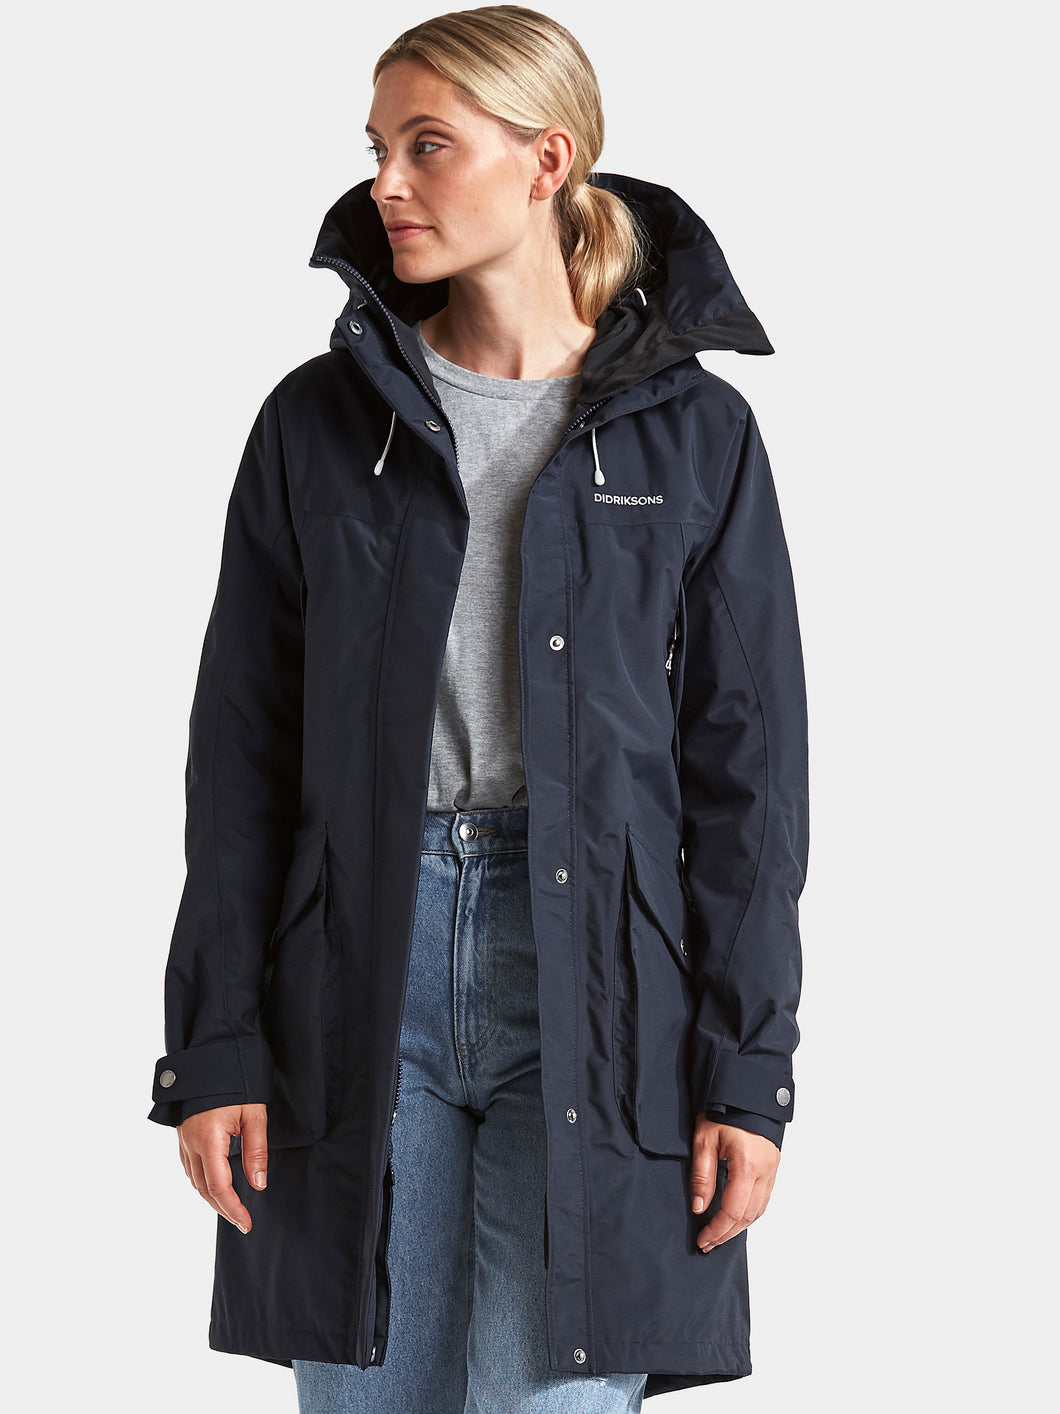 Didriksons Women's Thelma Water Proof Parka 4